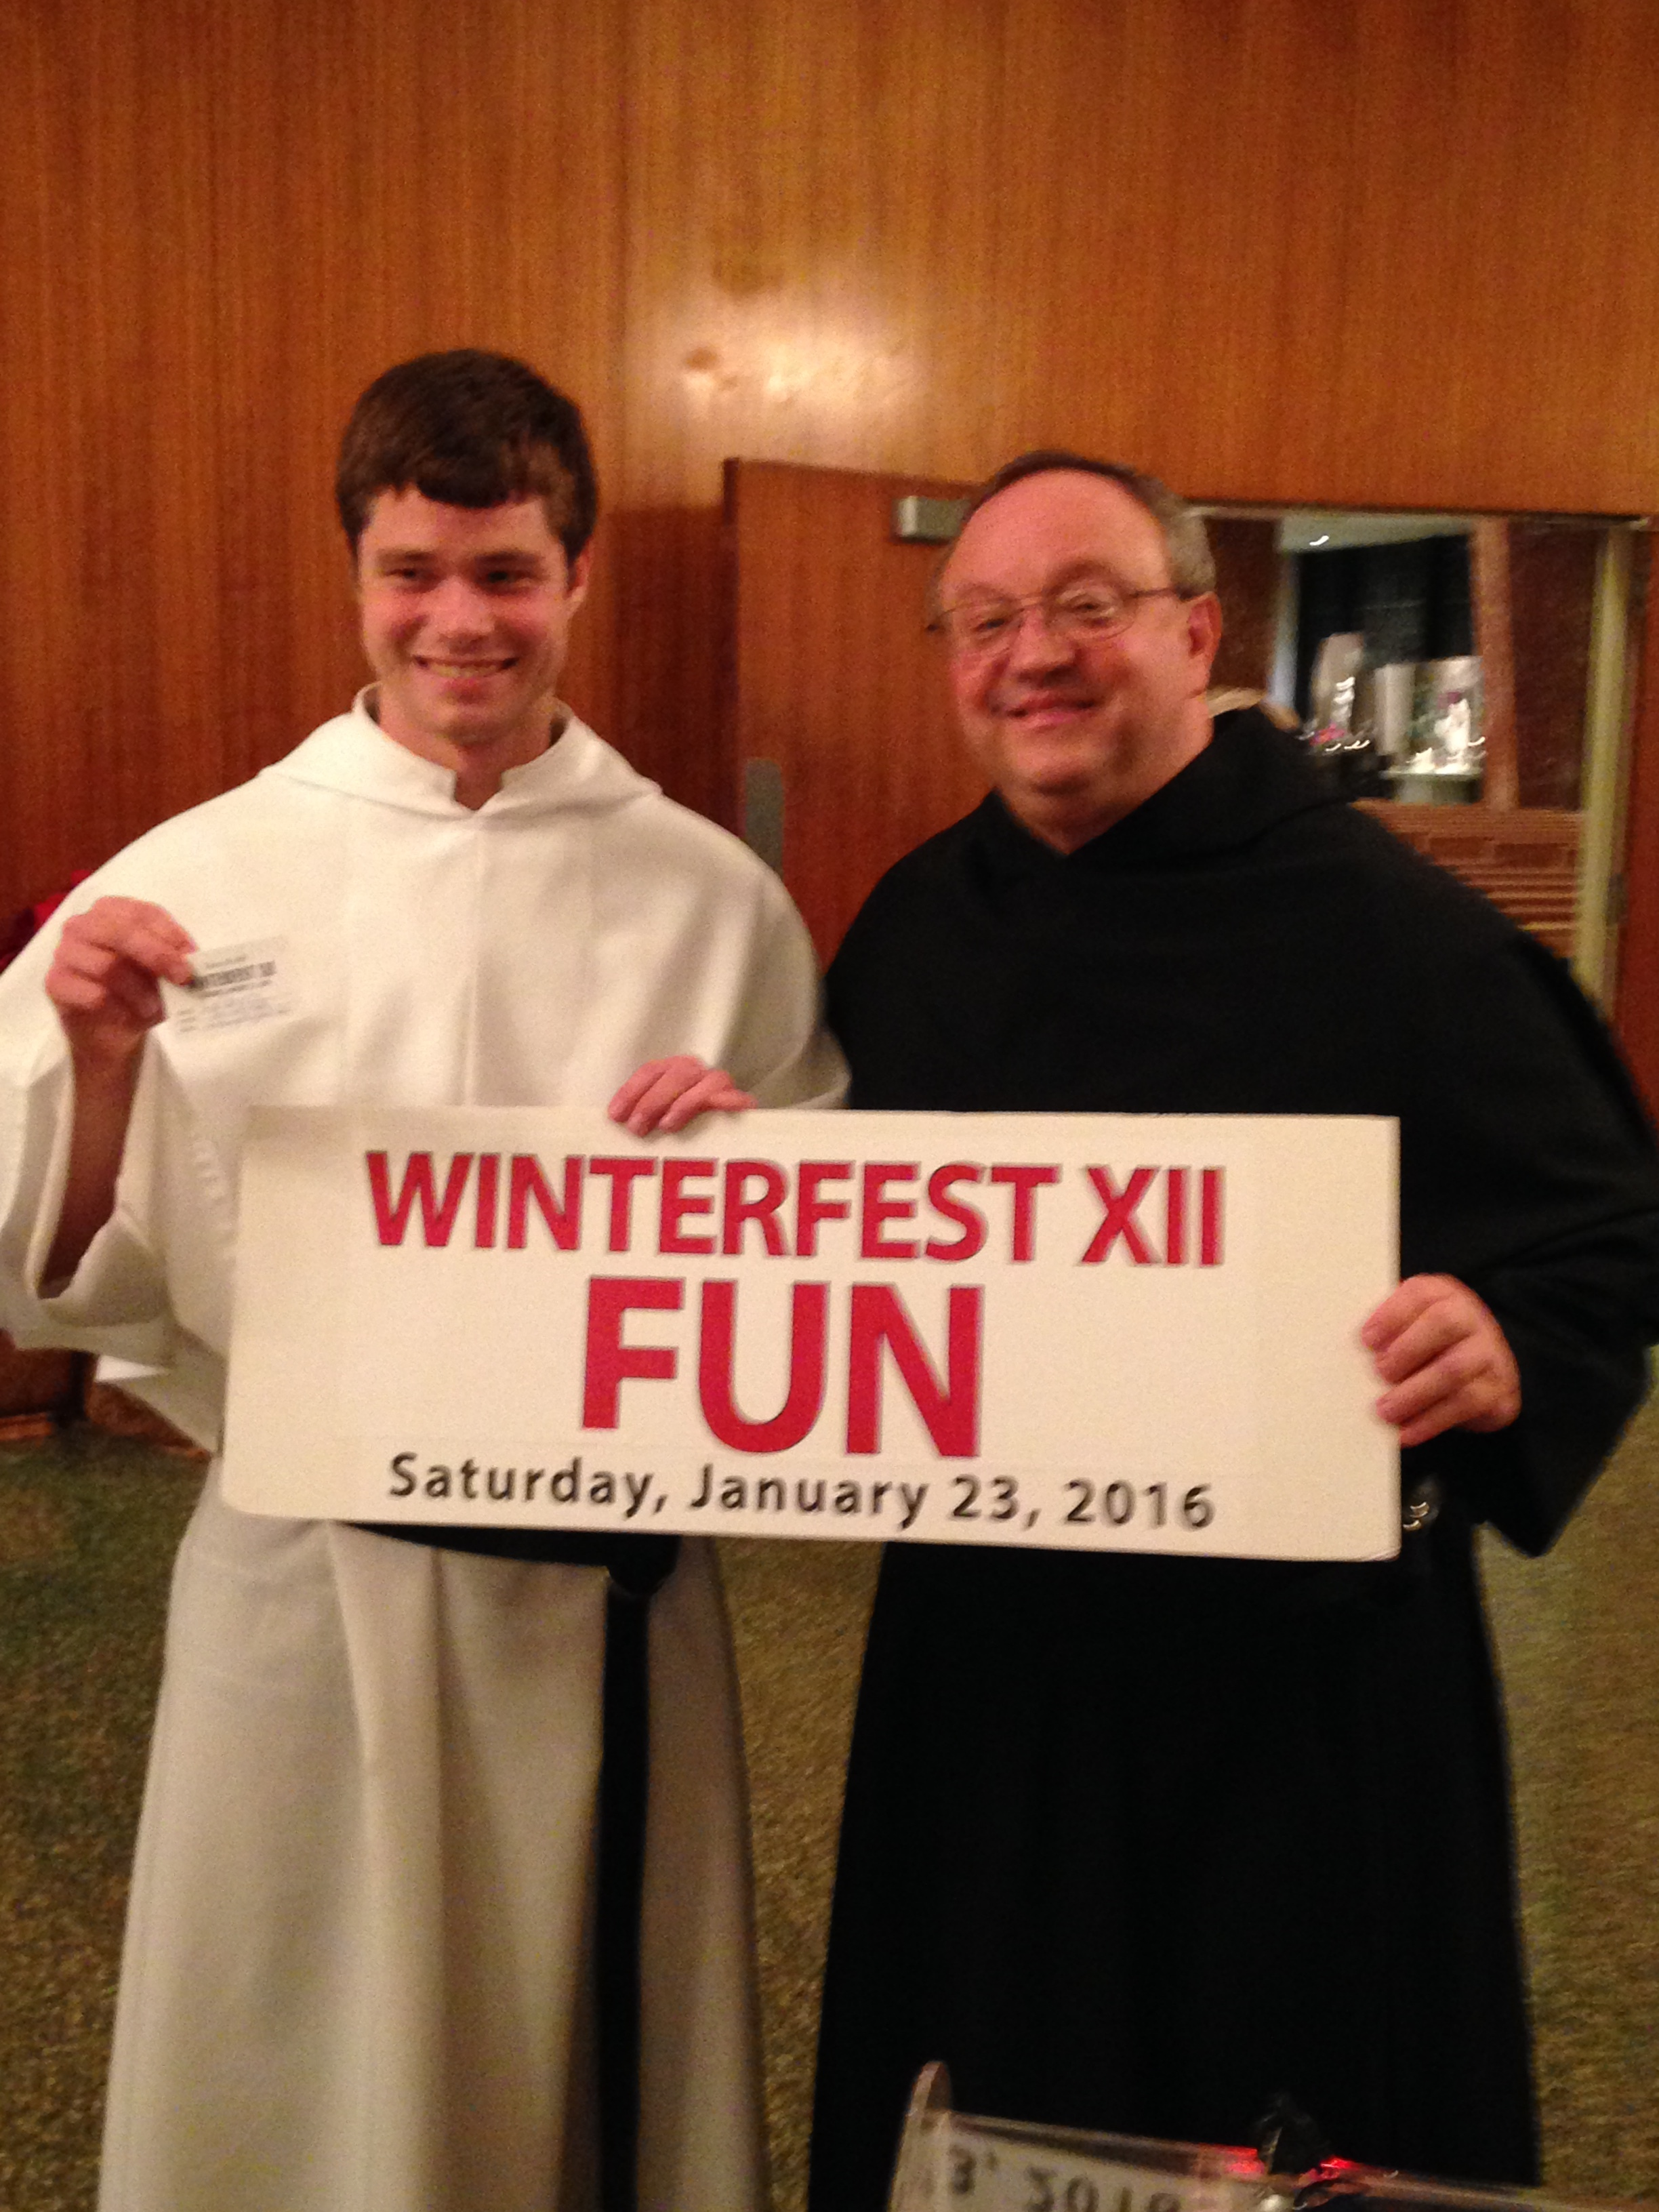 One of our Augustinian Men in Formation and St. Rita High School Chairman Fr. Bernie Scianna, O.S.A. '83 with the early-bird winning ticket!